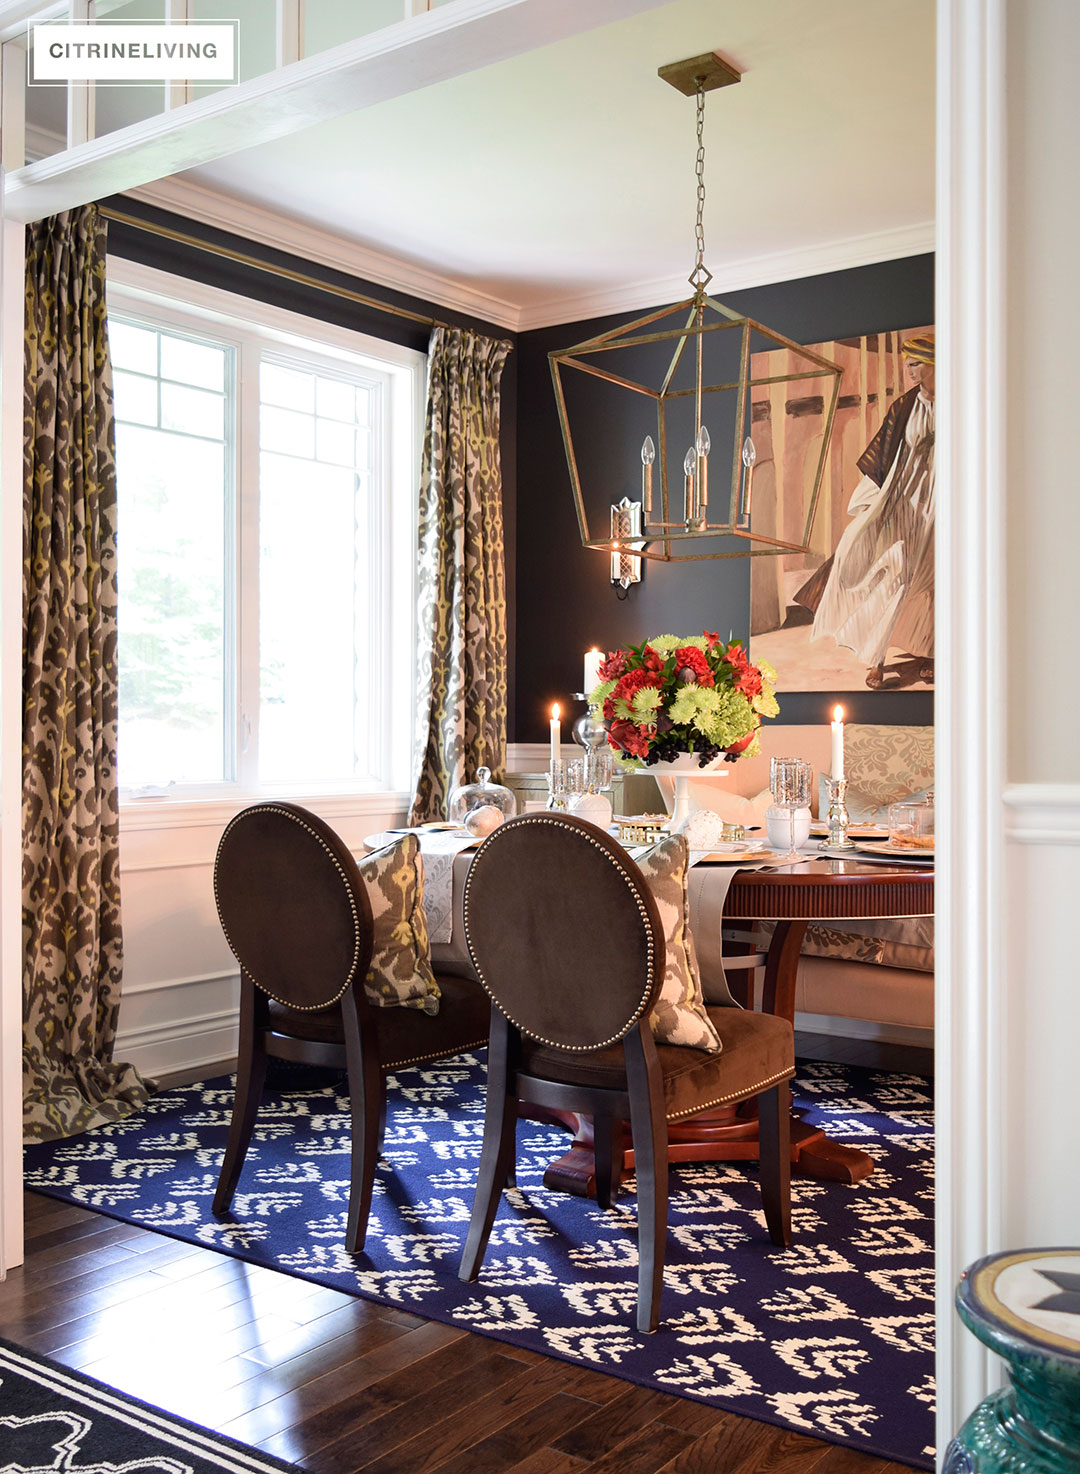 Fall dining room decor with rich layers of pattern an texture create a curated look